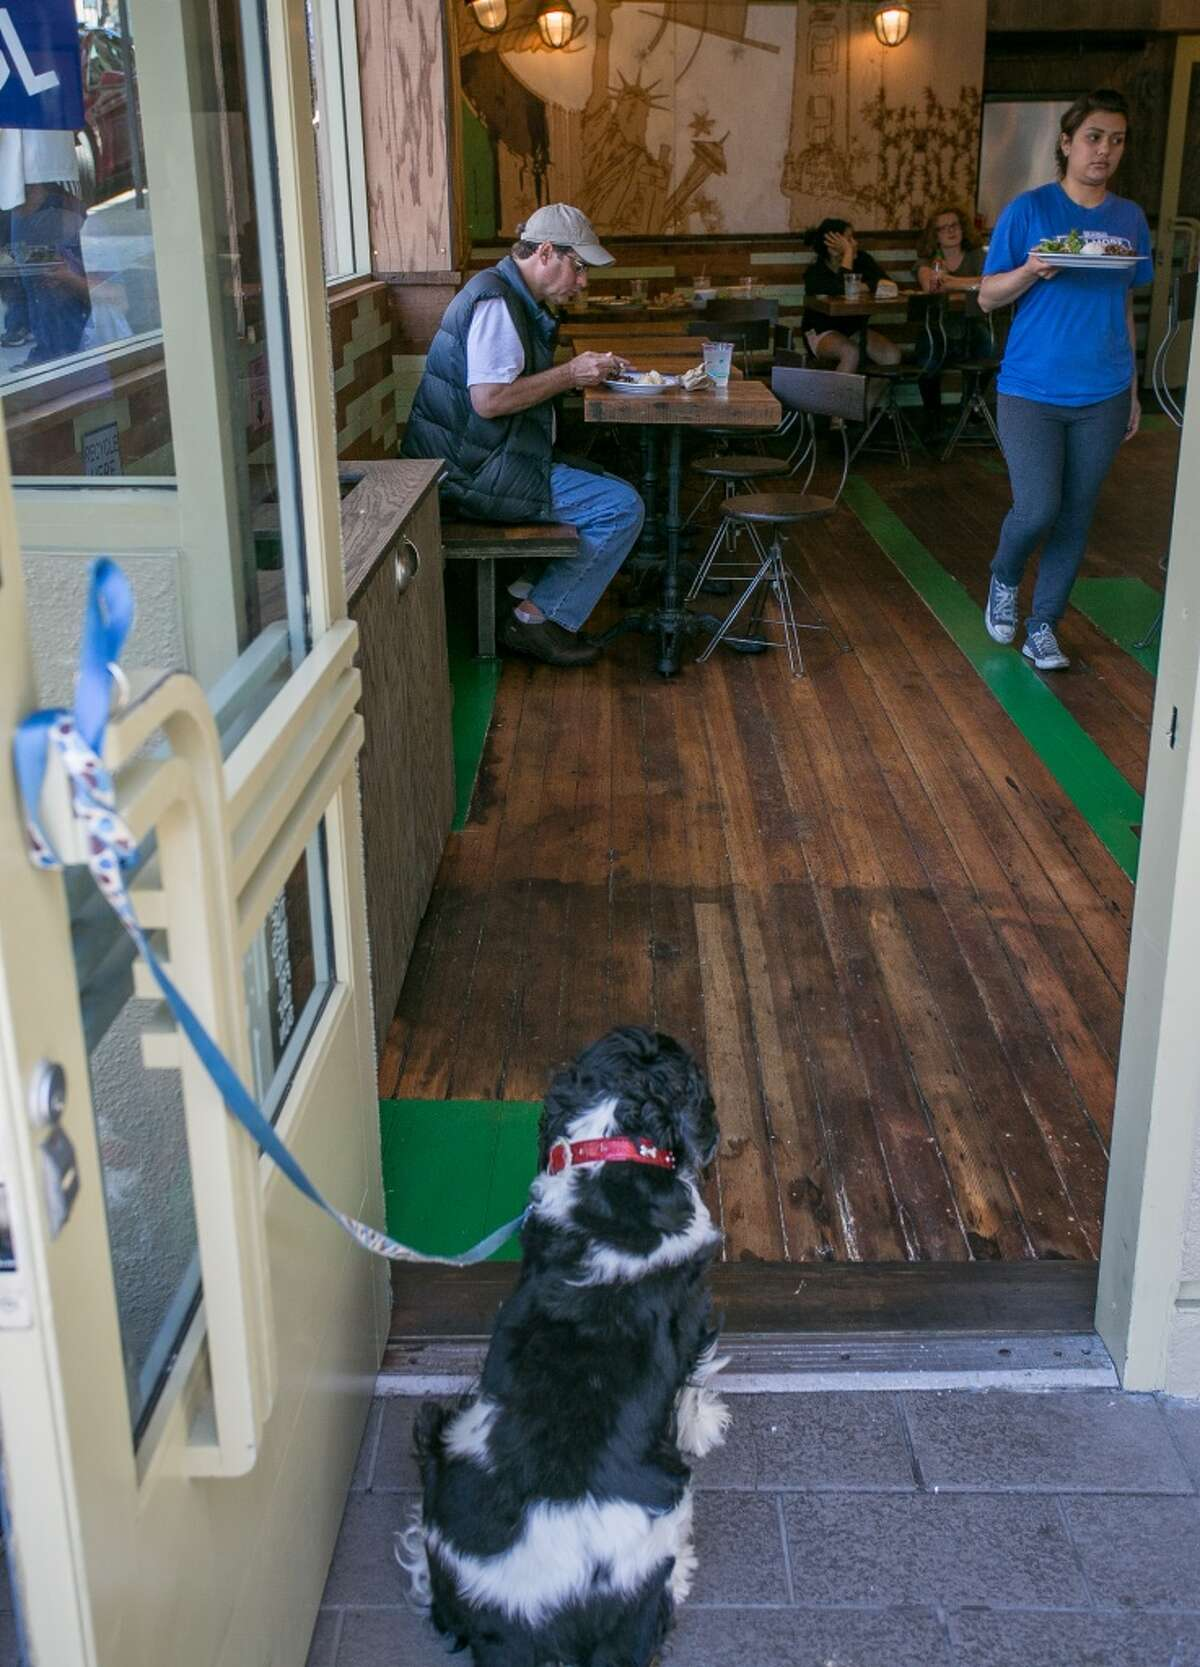 A dog watches his owner eat lunch at Glaze Teriyaki Grill in San Francisco.